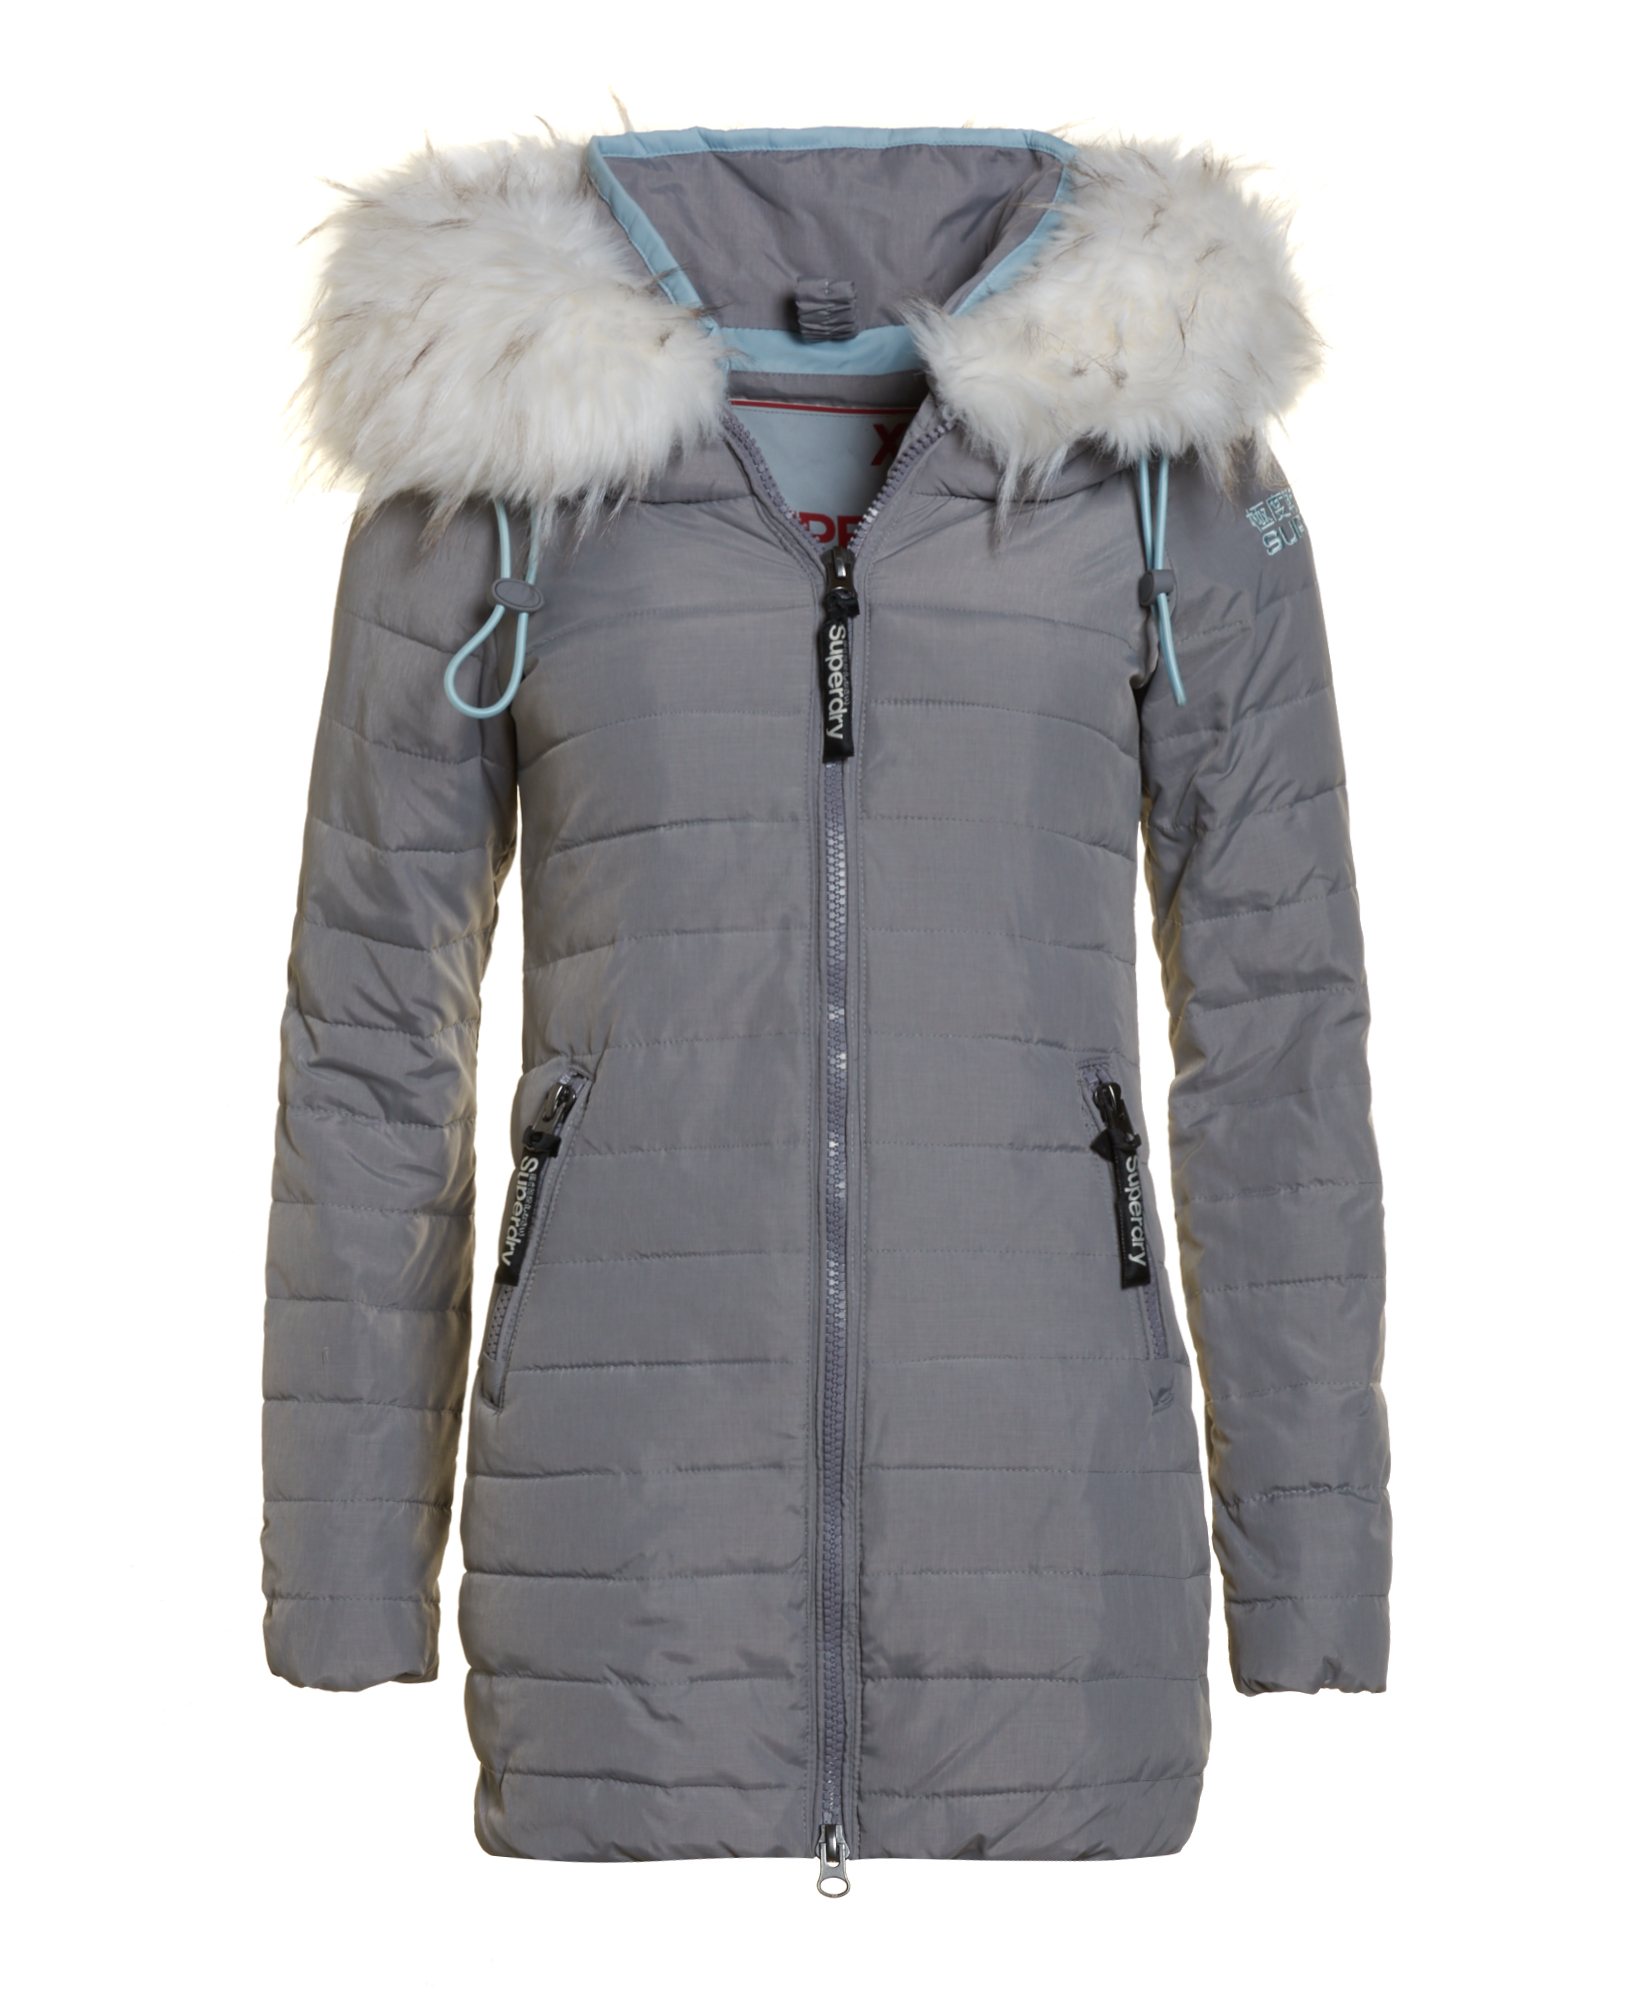 neue damen superdry jacke marl wind skier mantel grey marl. Black Bedroom Furniture Sets. Home Design Ideas